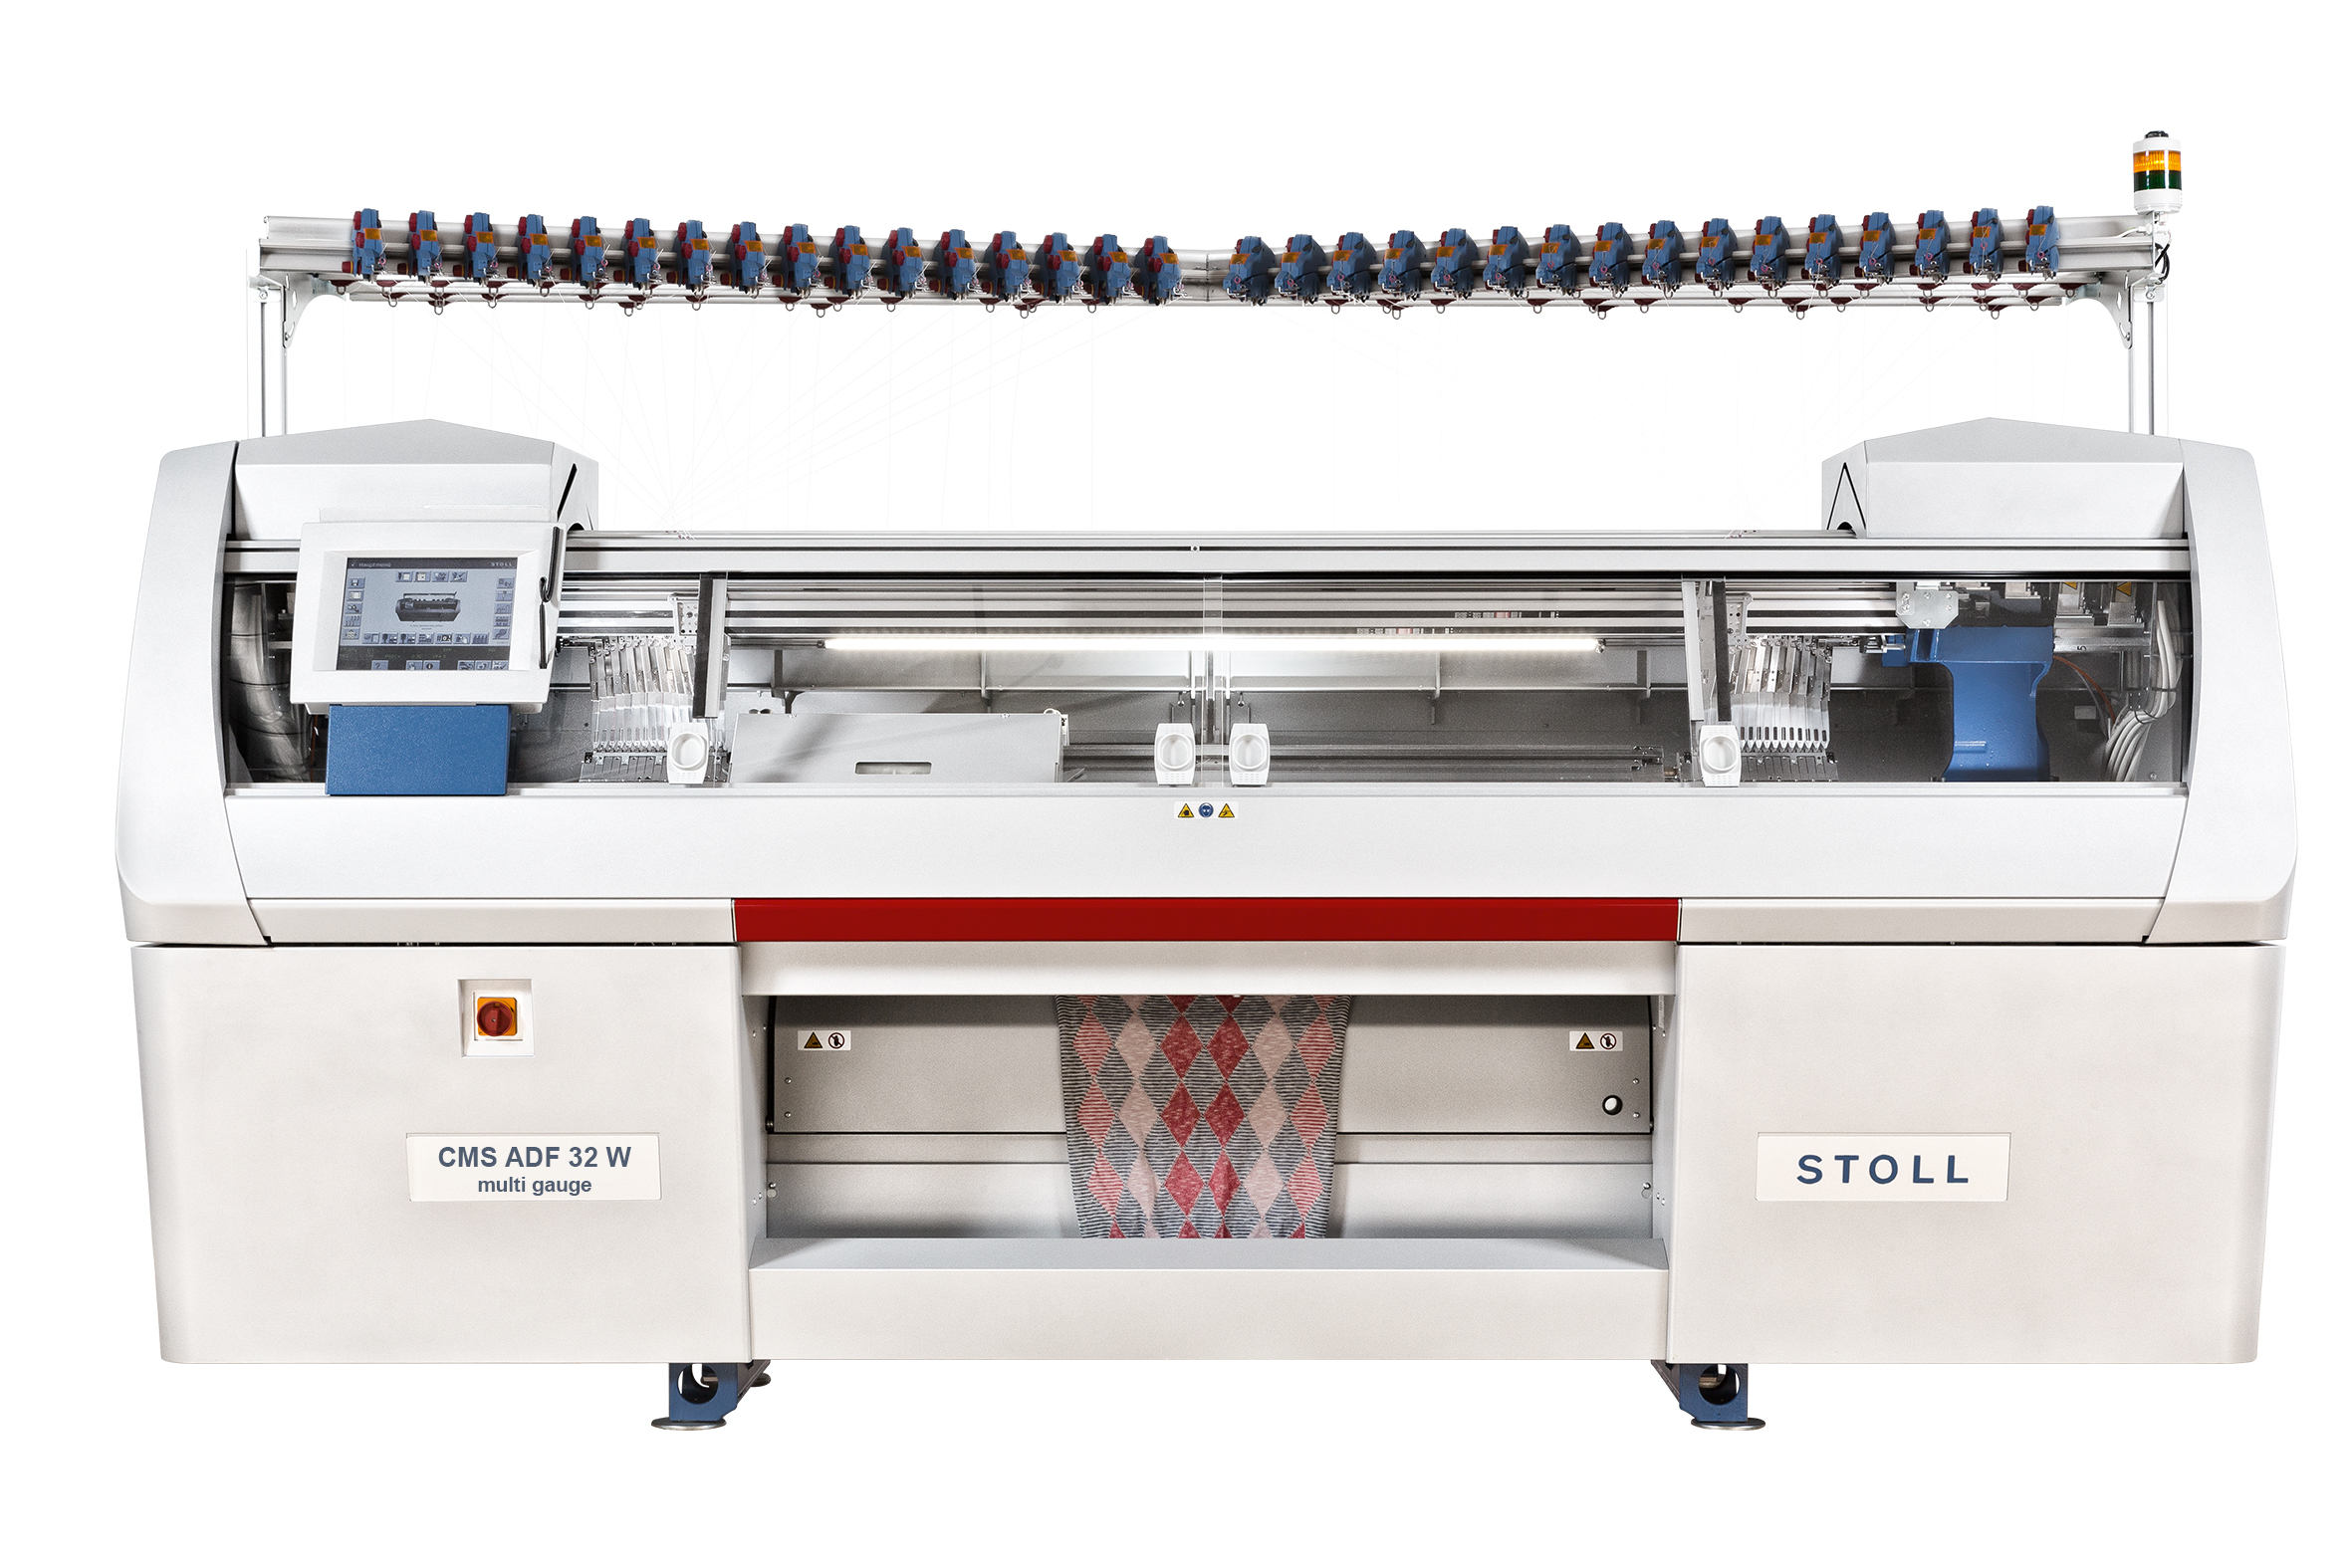 Stoll CMS ADF 32 W multi gauge E 7.2 machine. © Stoll